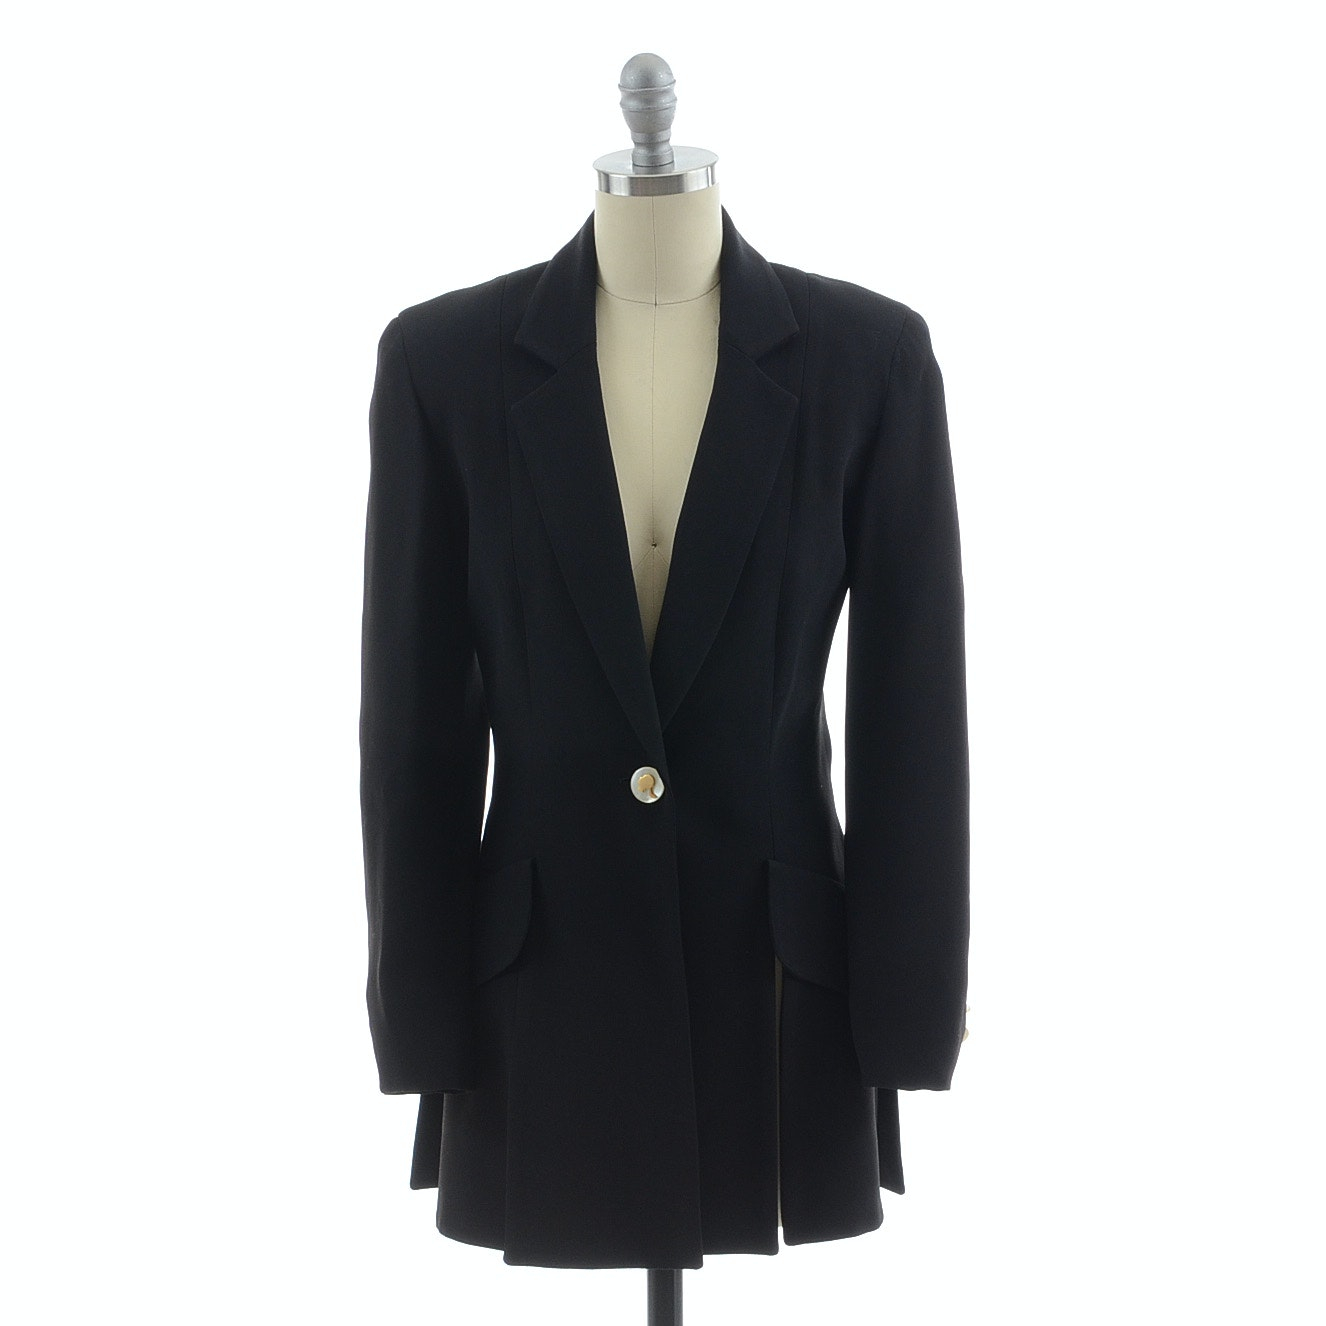 "Moschino Black Paneled Cut Blazer from the ""Cheap and Chic"" Collection, Circa 2000s"